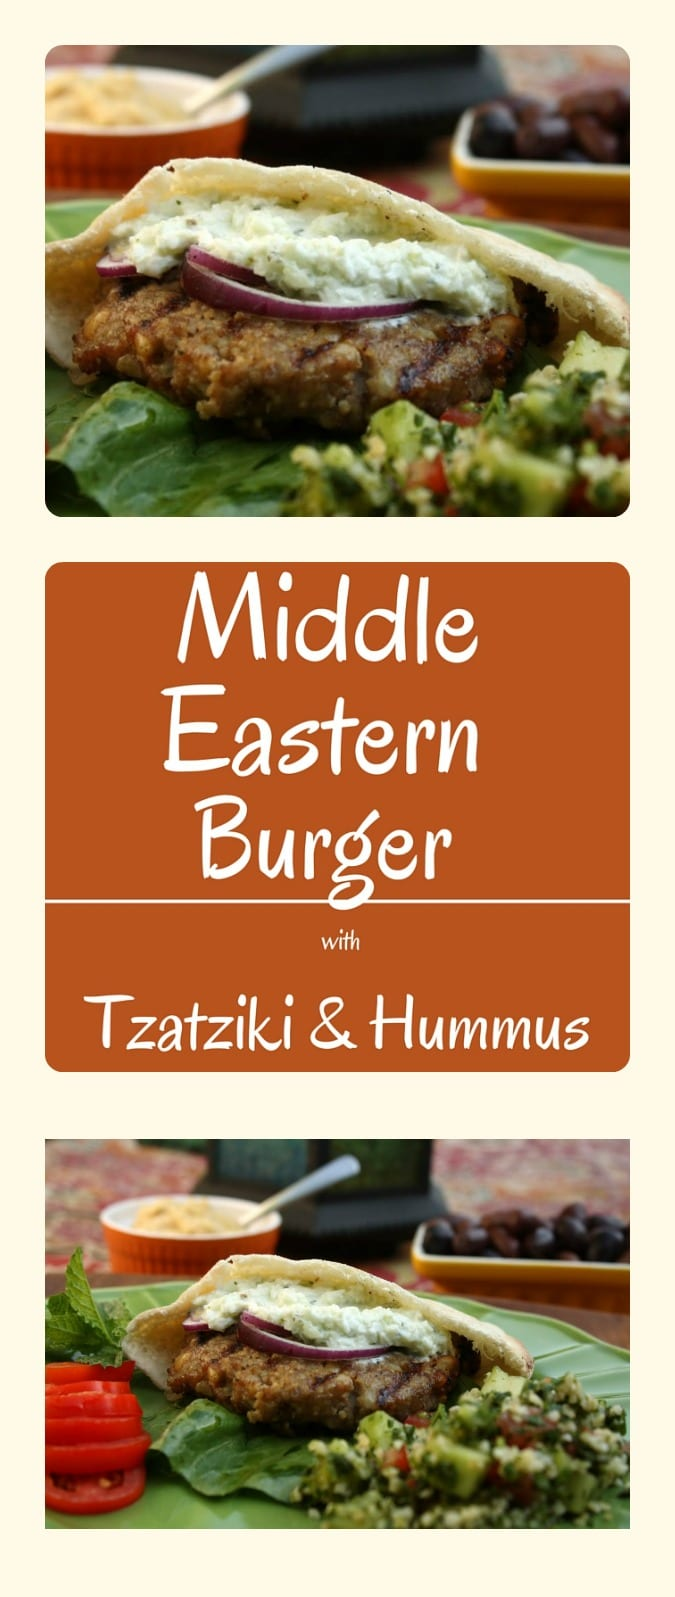 Middle Eastern Burger with Tzatziki and Hummus.